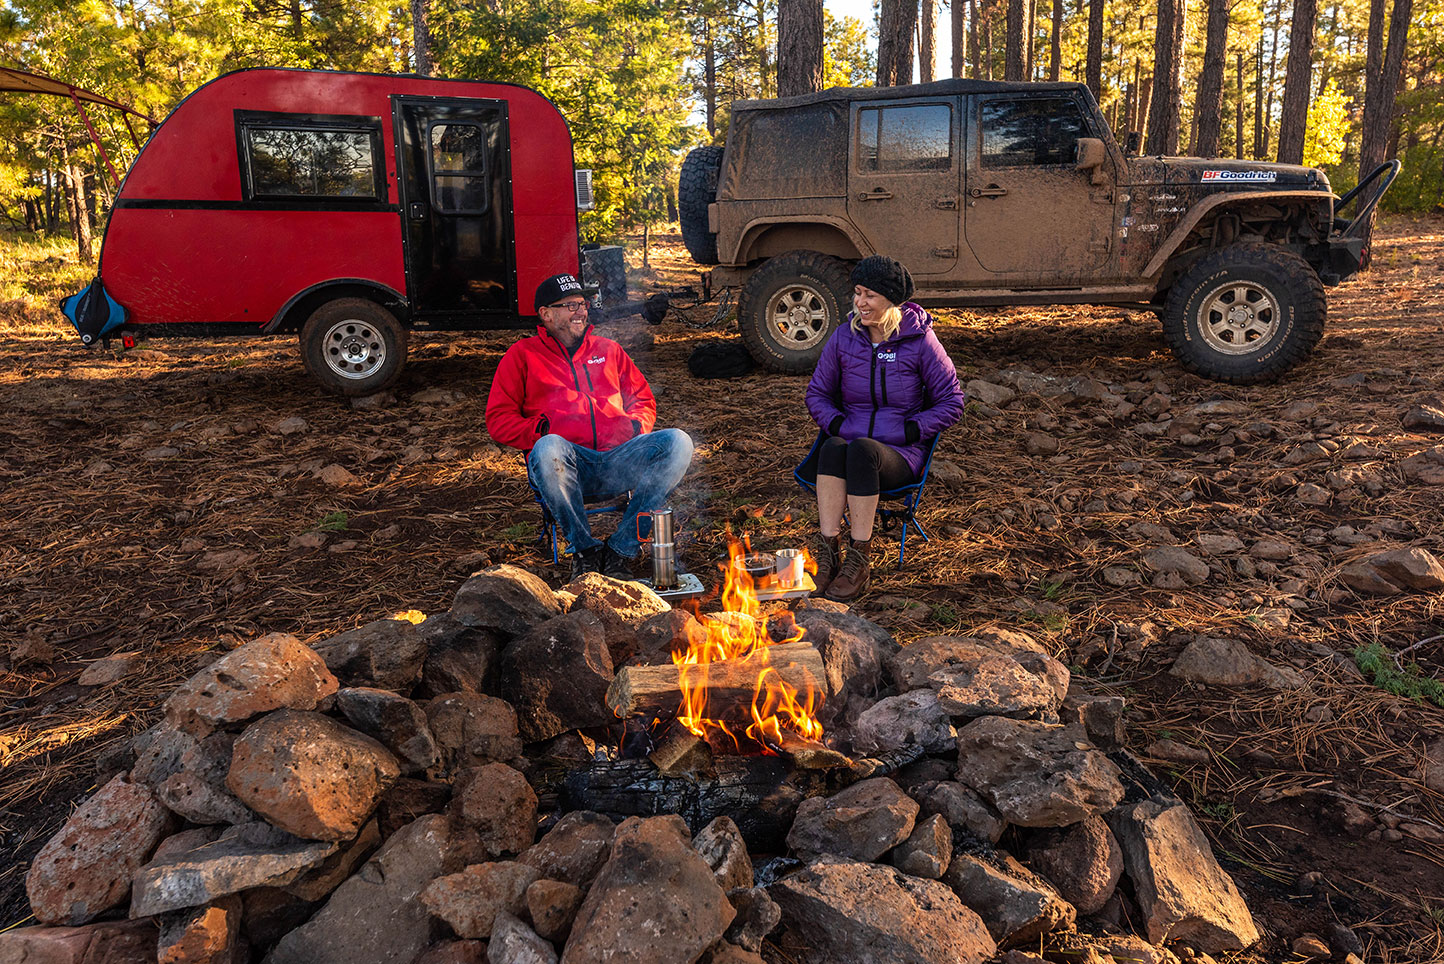 Camping, Vintage Teardrop Trailer, Camp Fire, Off-Road Jeep, Adventure Lifestyle Photographer, Daniel Britton